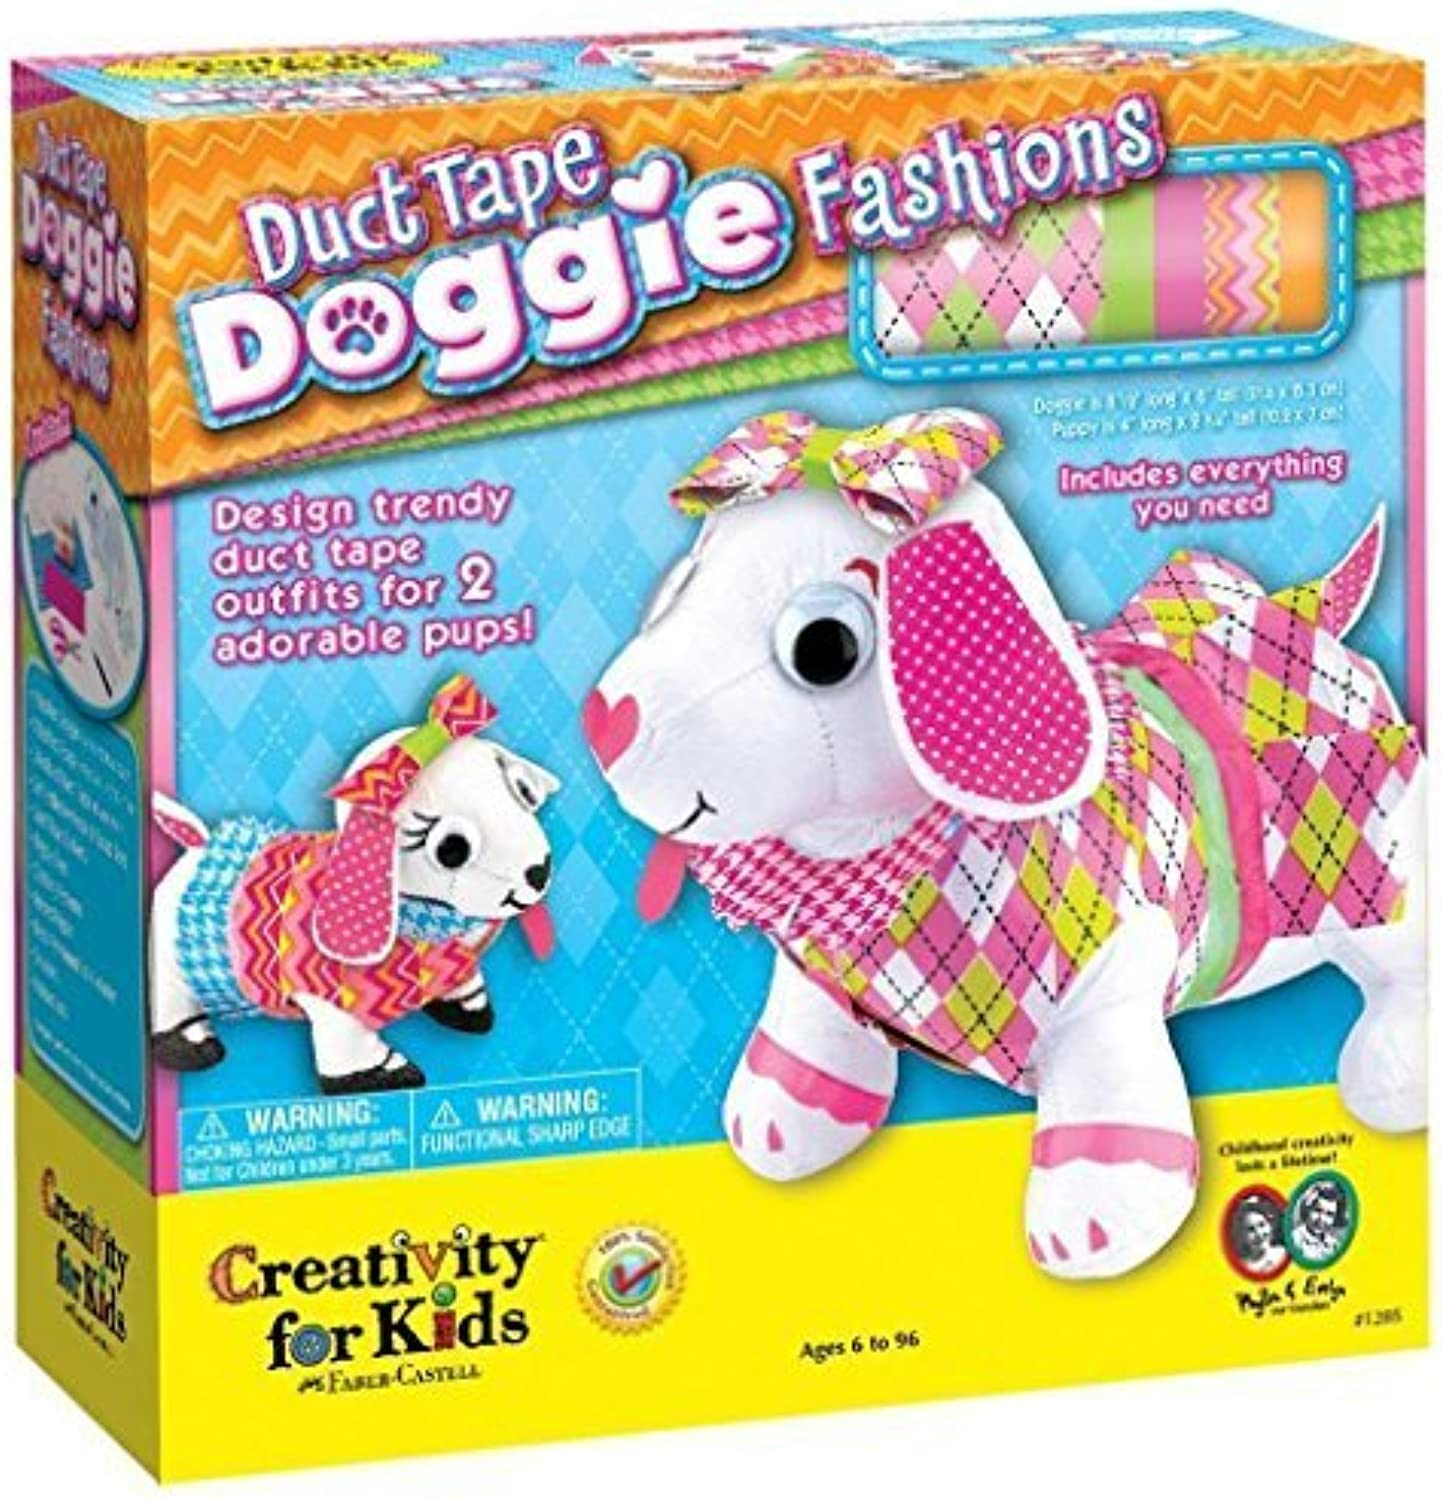 Duct Tape Doggie Fashions Kit by Creativity for Kids